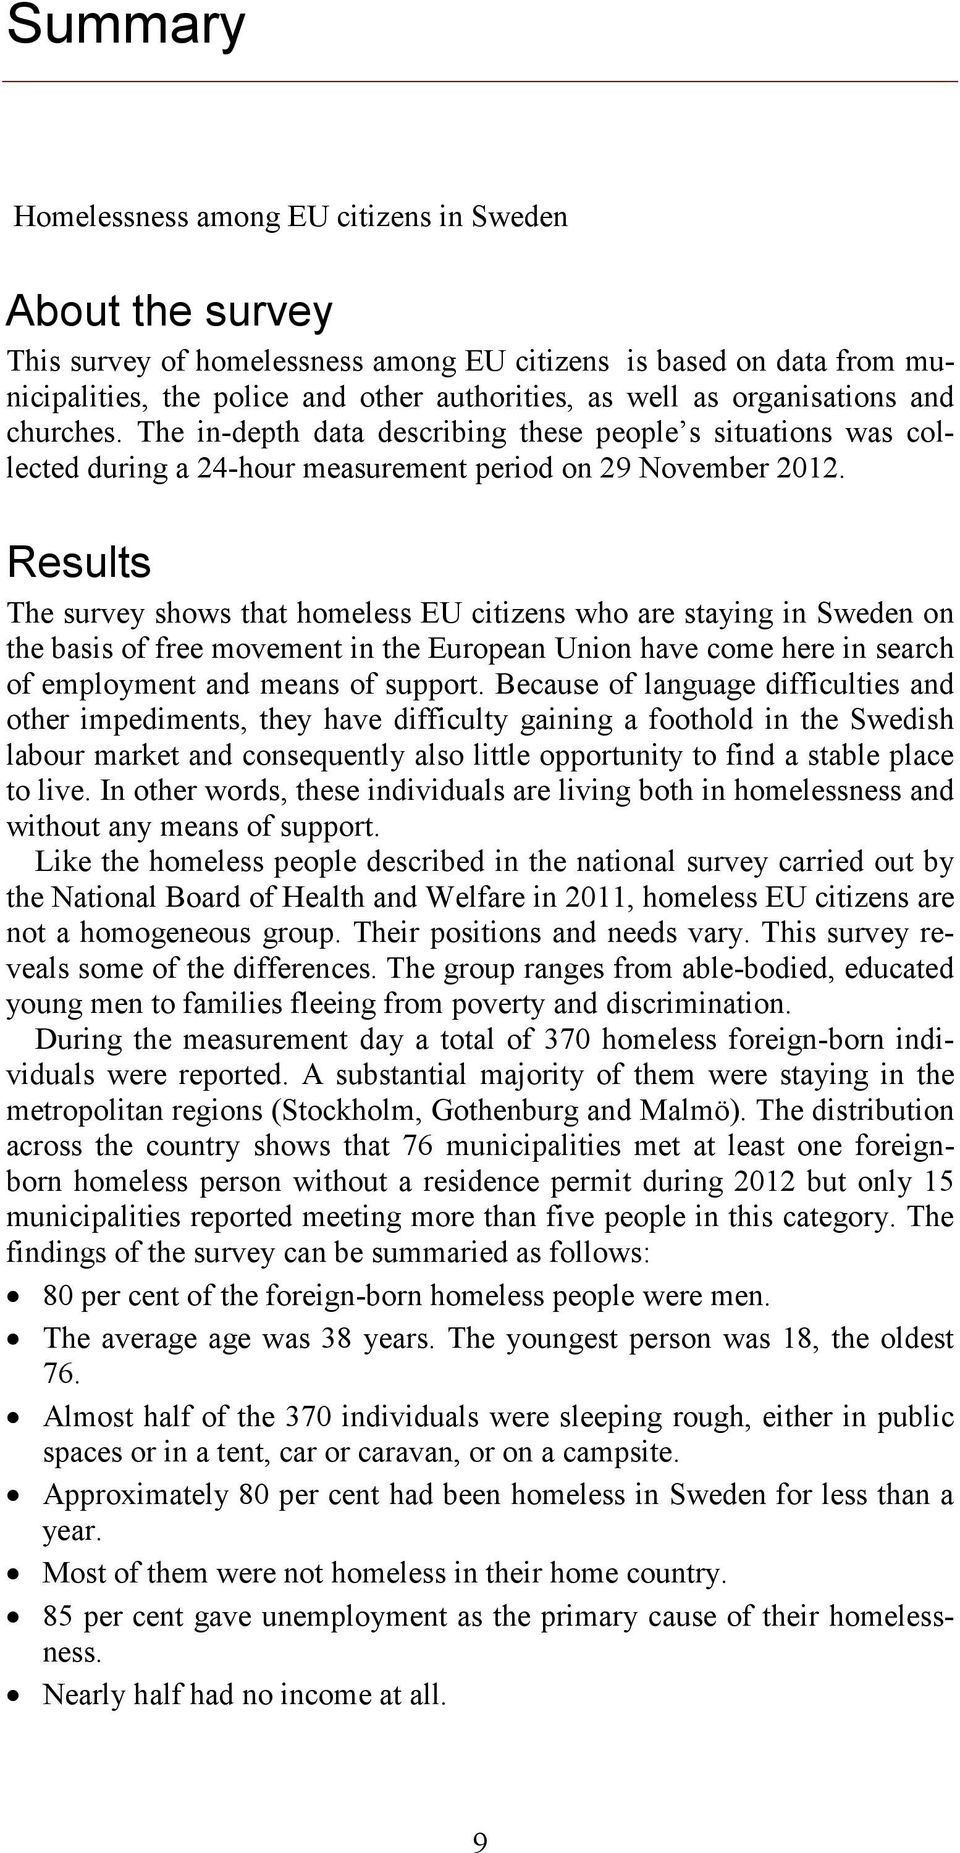 Results The survey shows that homeless EU citizens who are staying in Sweden on the basis of free movement in the European Union have come here in search of employment and means of support.